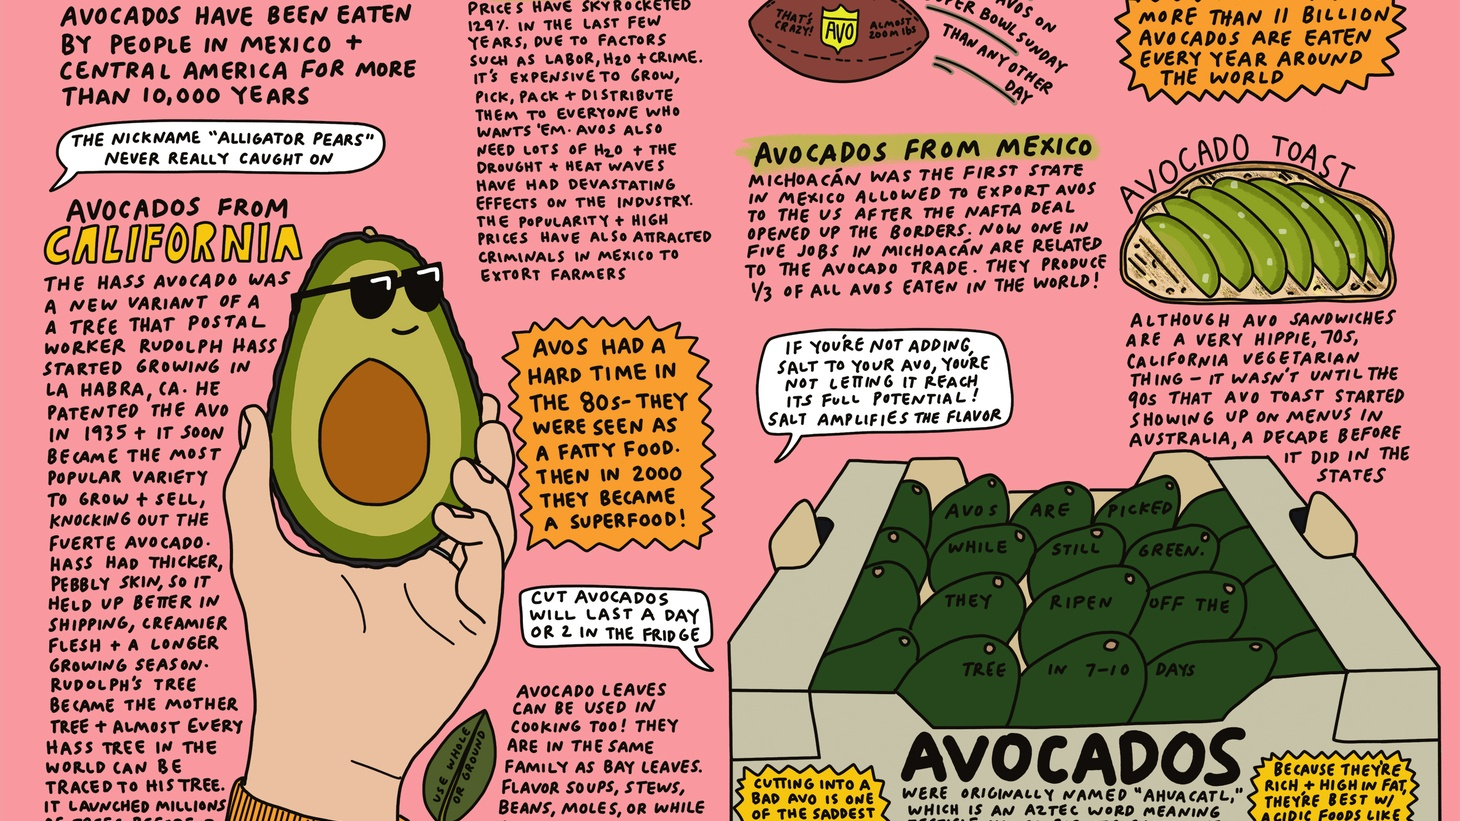 Stacy Michelson writes that avocados were considered a fatty food in the 1980s, then became a superfood in 2000.